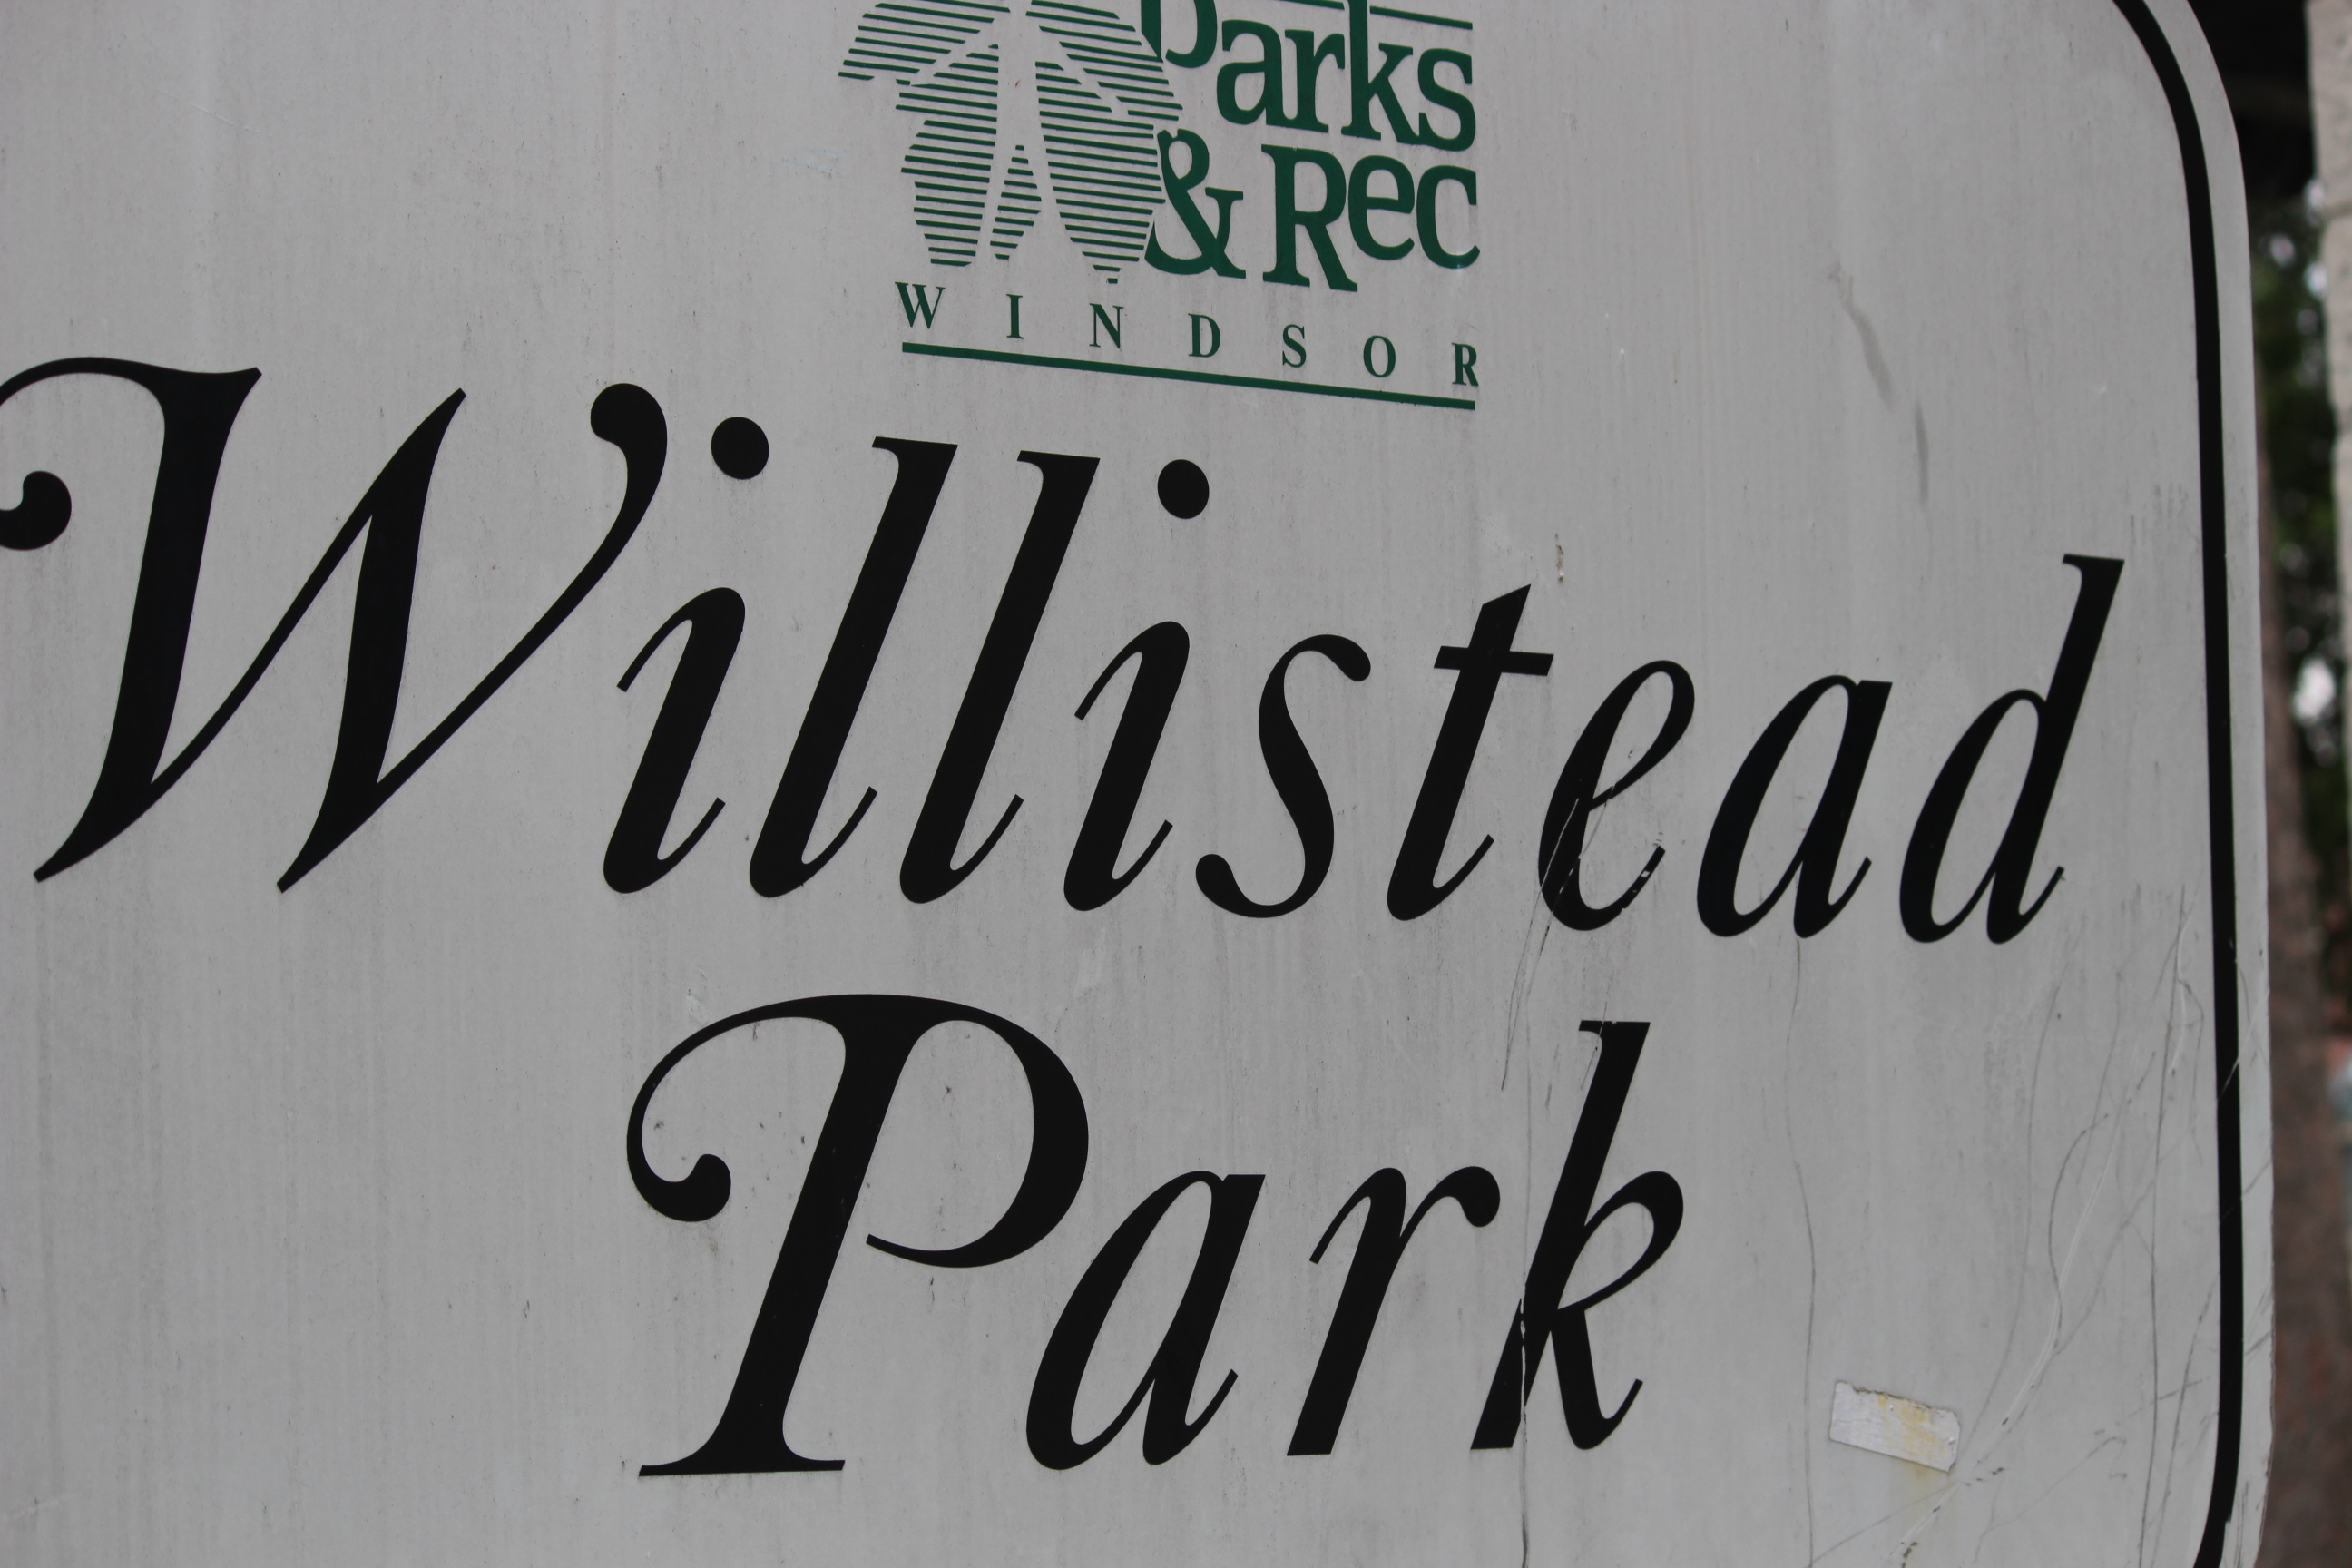 Willistead Park in Windsor, Ontario. (BlackburnNews.com file photo)